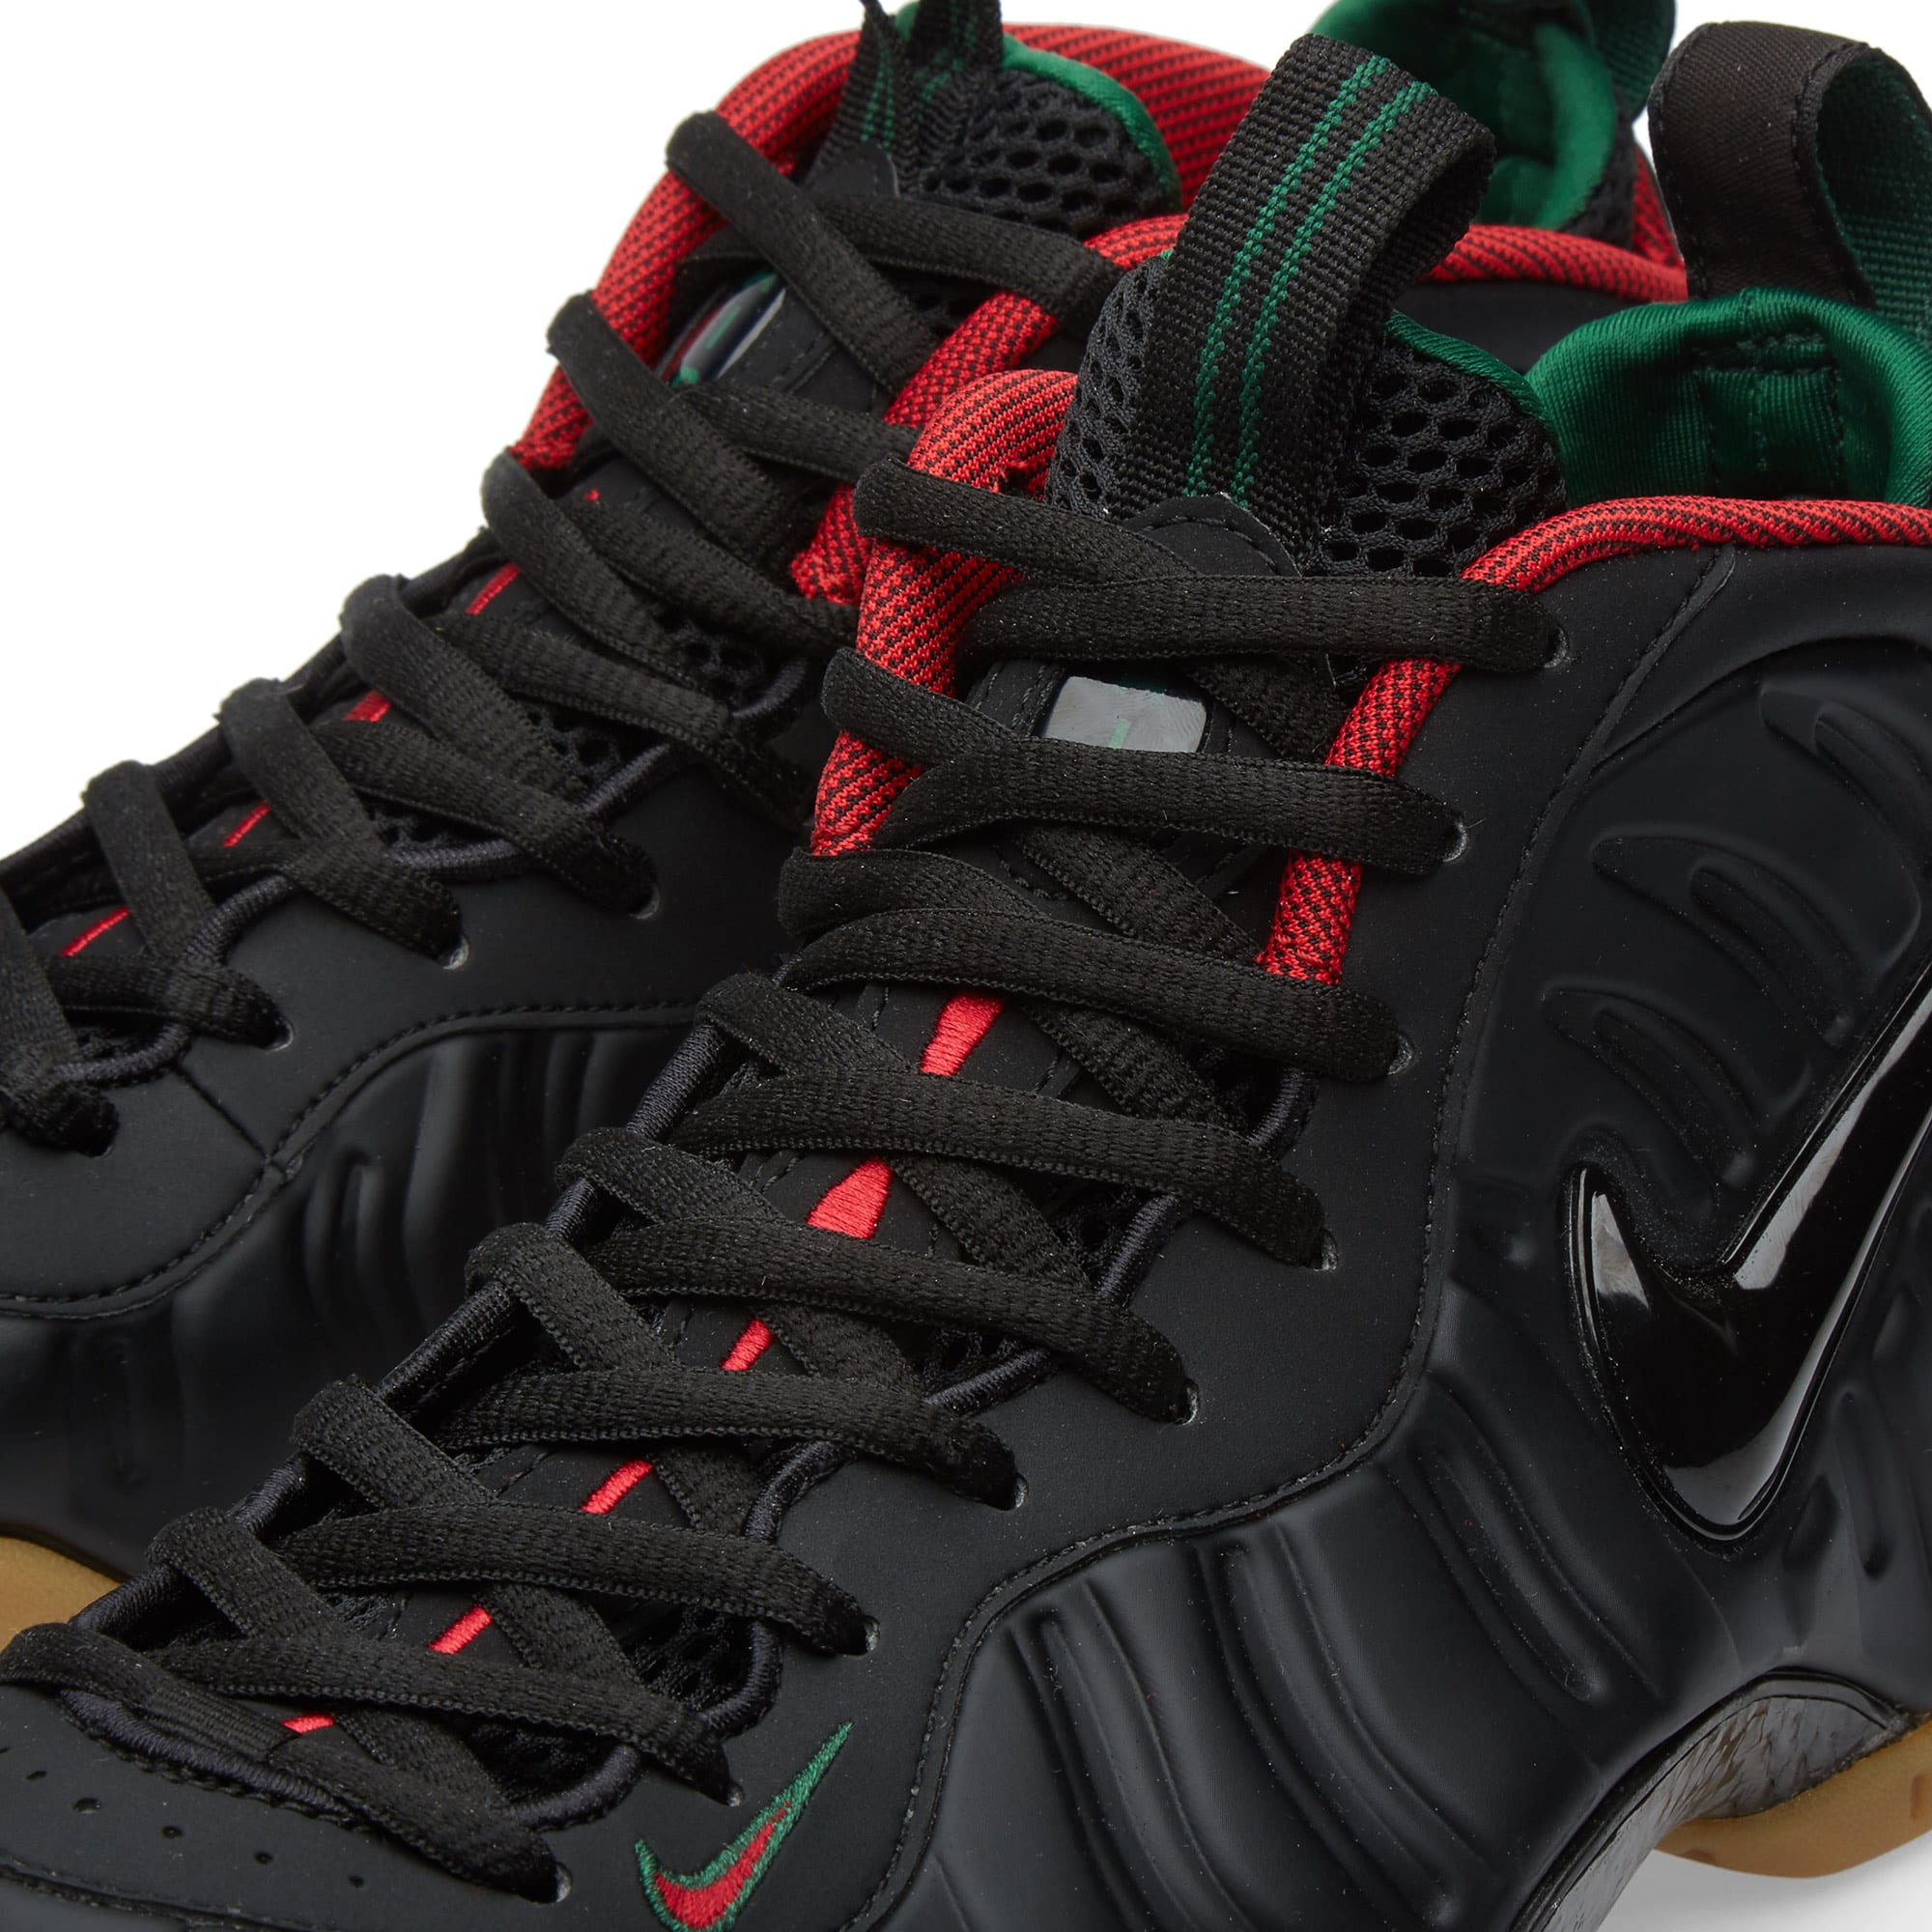 3a247d1f10c4f Nike Air Foamposite Pro Black   Gym Red